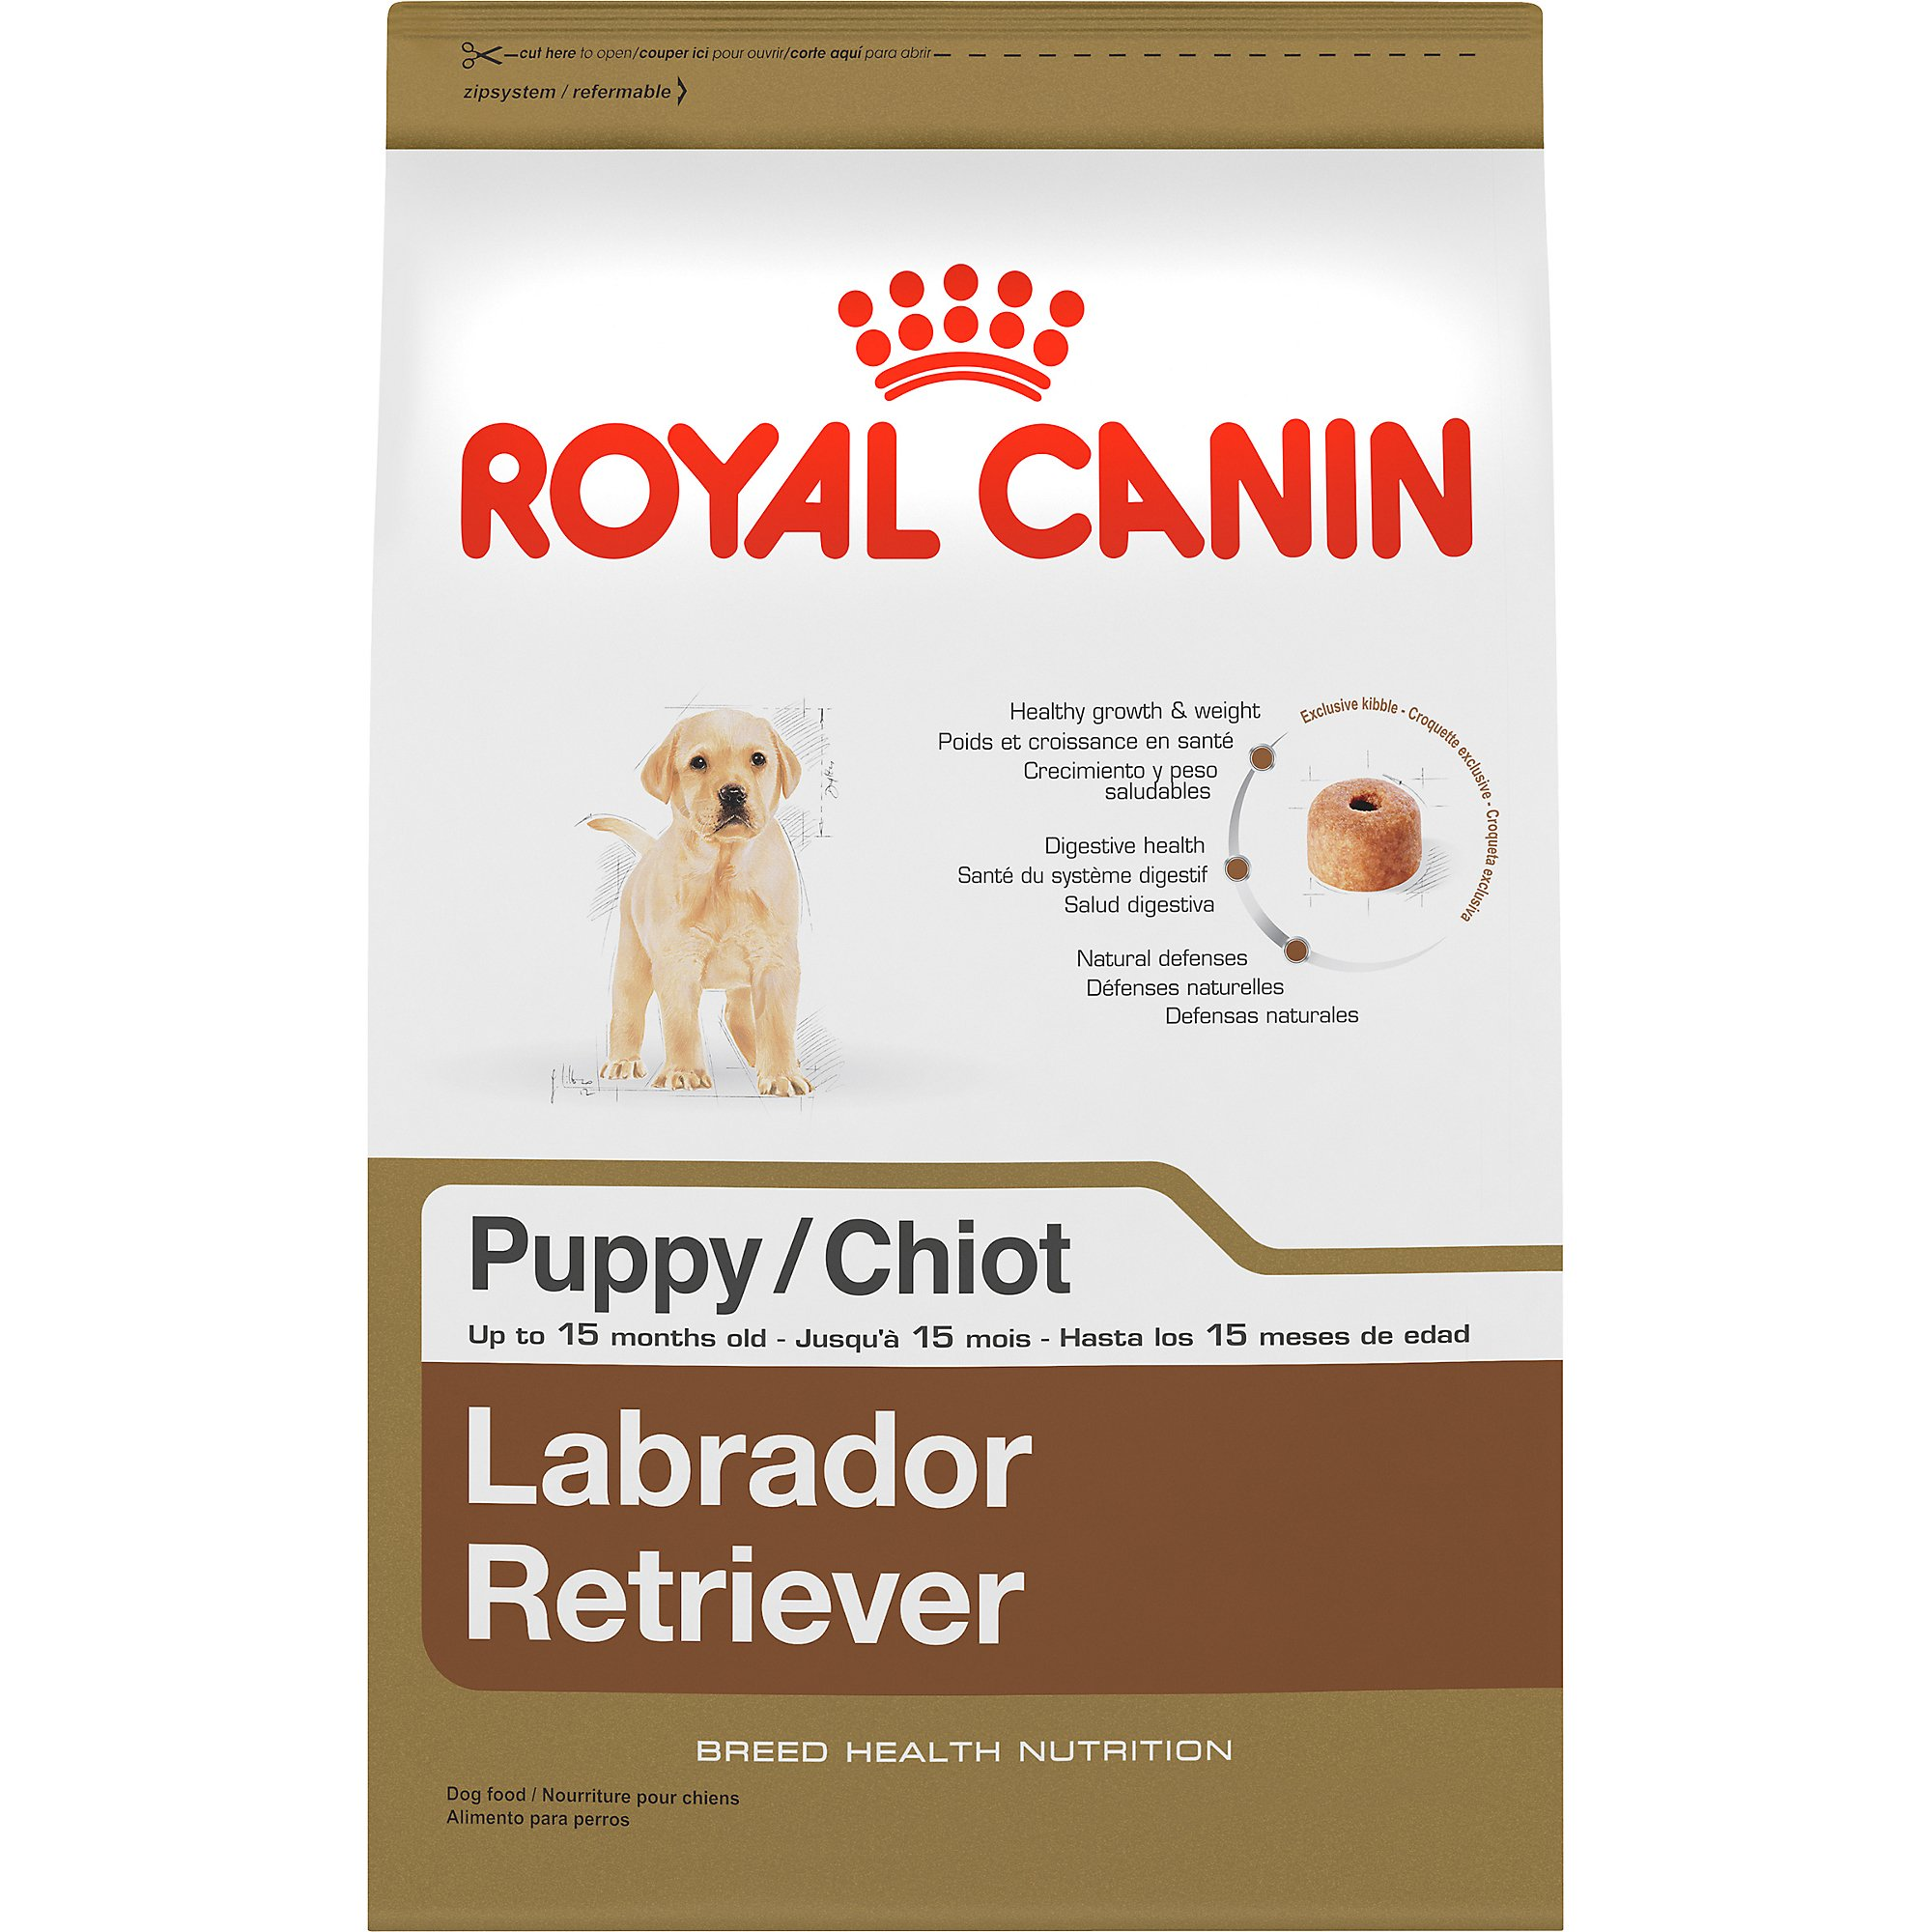 Royal Canin Breed Health Nutrition Labrador Retriever Puppy Dry